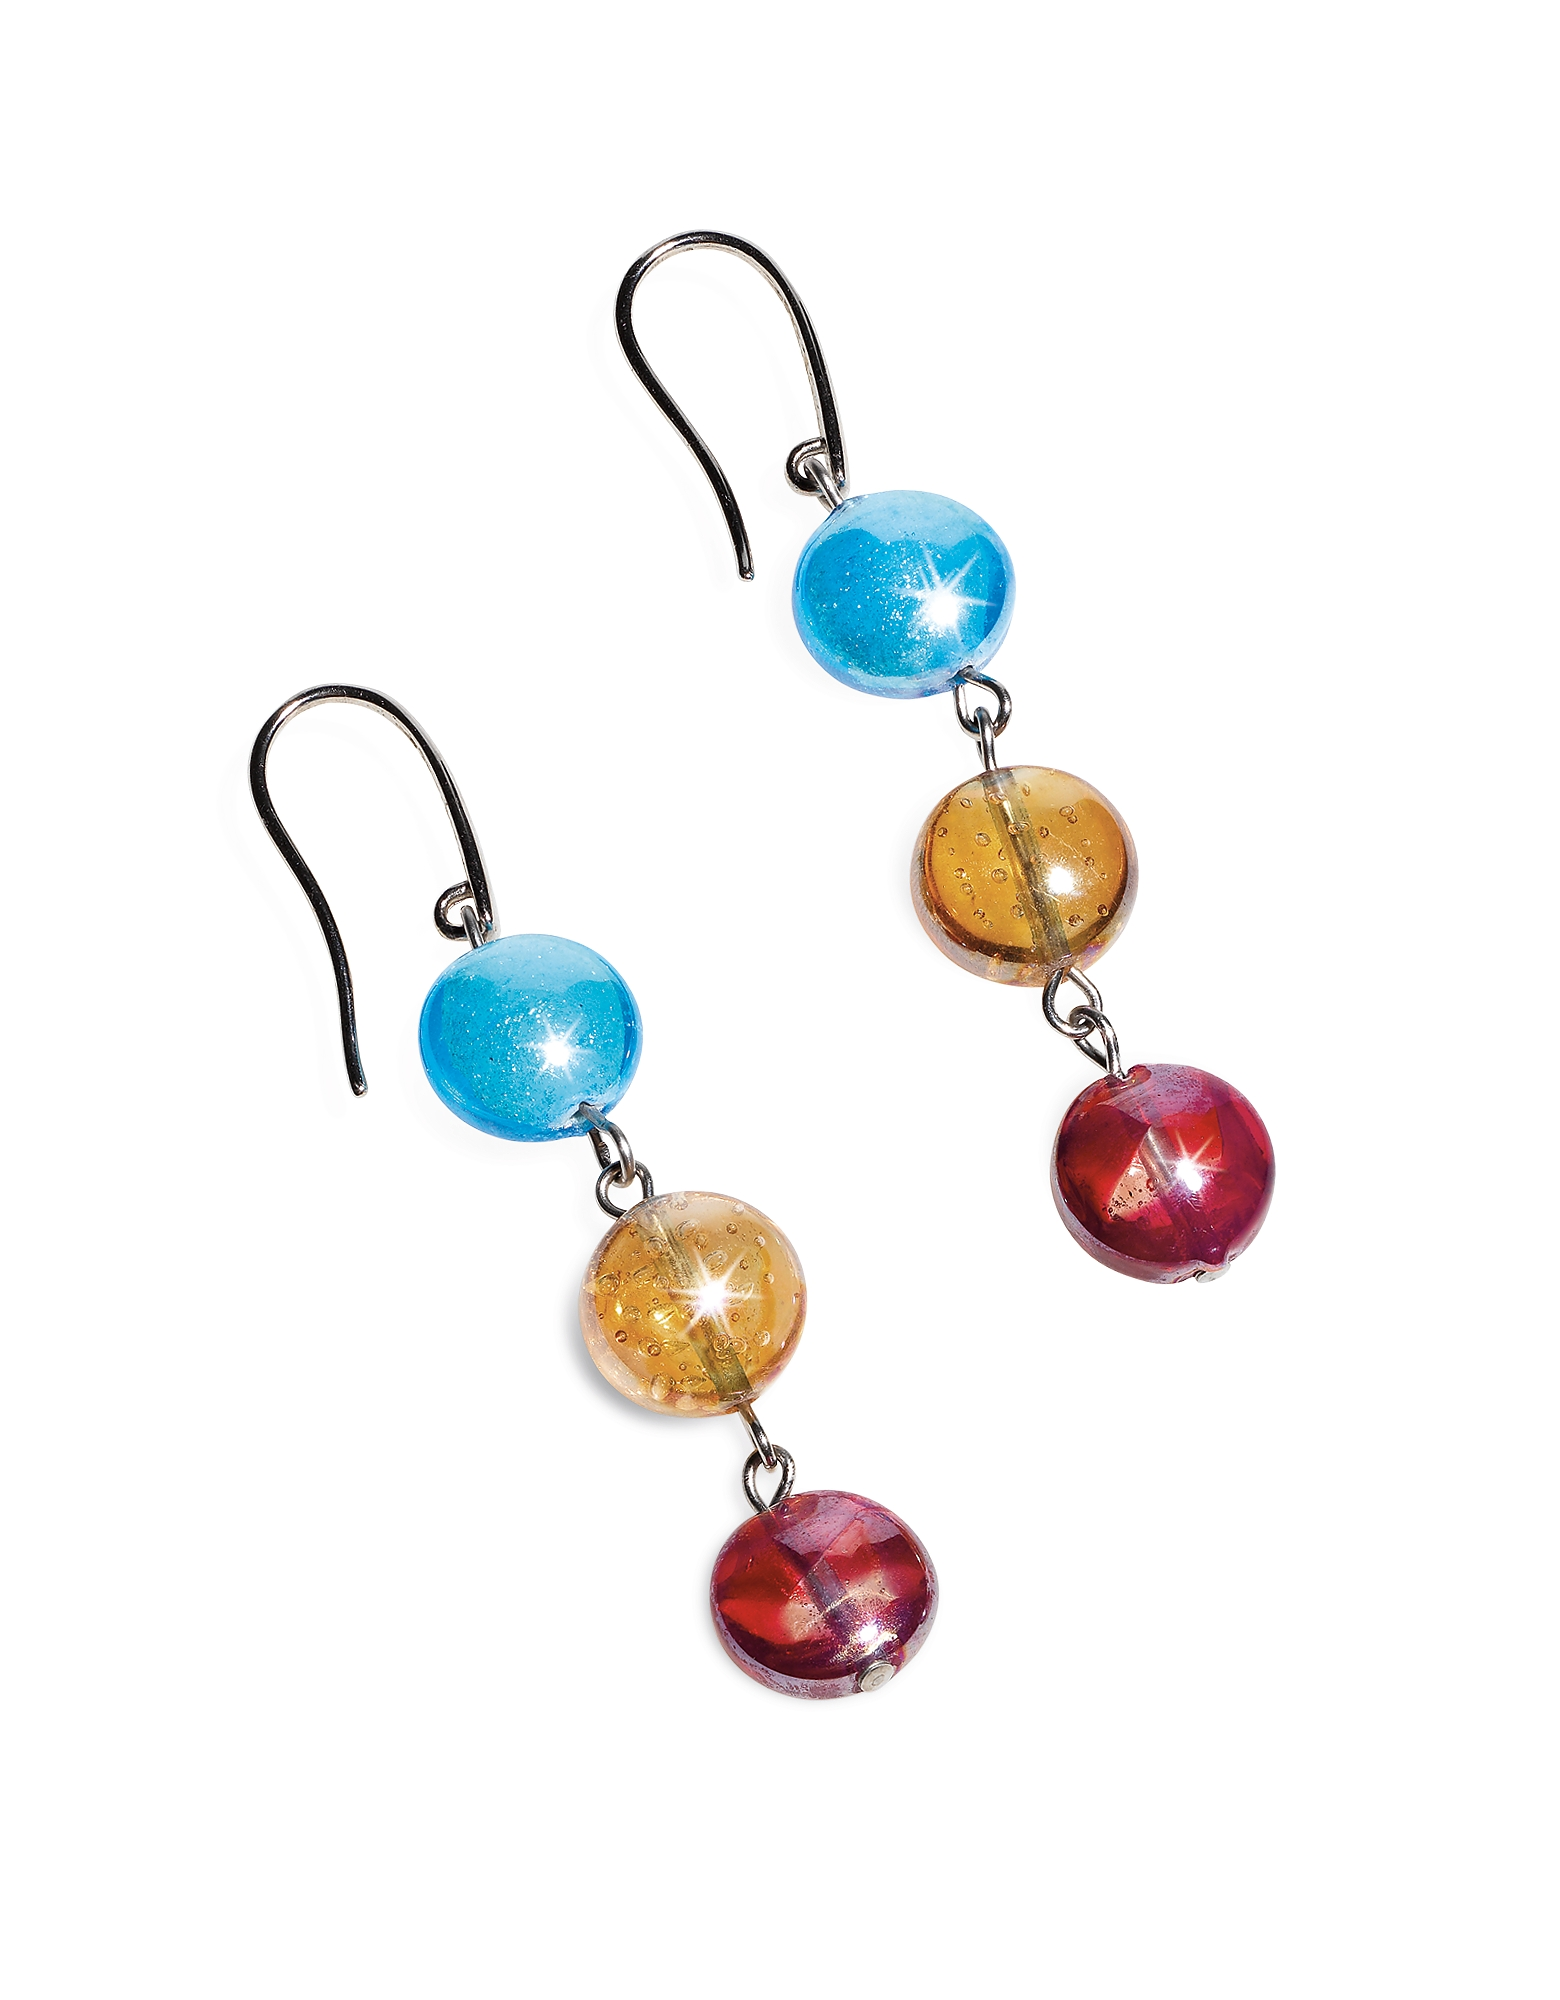 Redentore 1 - Multicolor Murano Glass & Silver Leaf Dangling Earrings от Forzieri.com INT